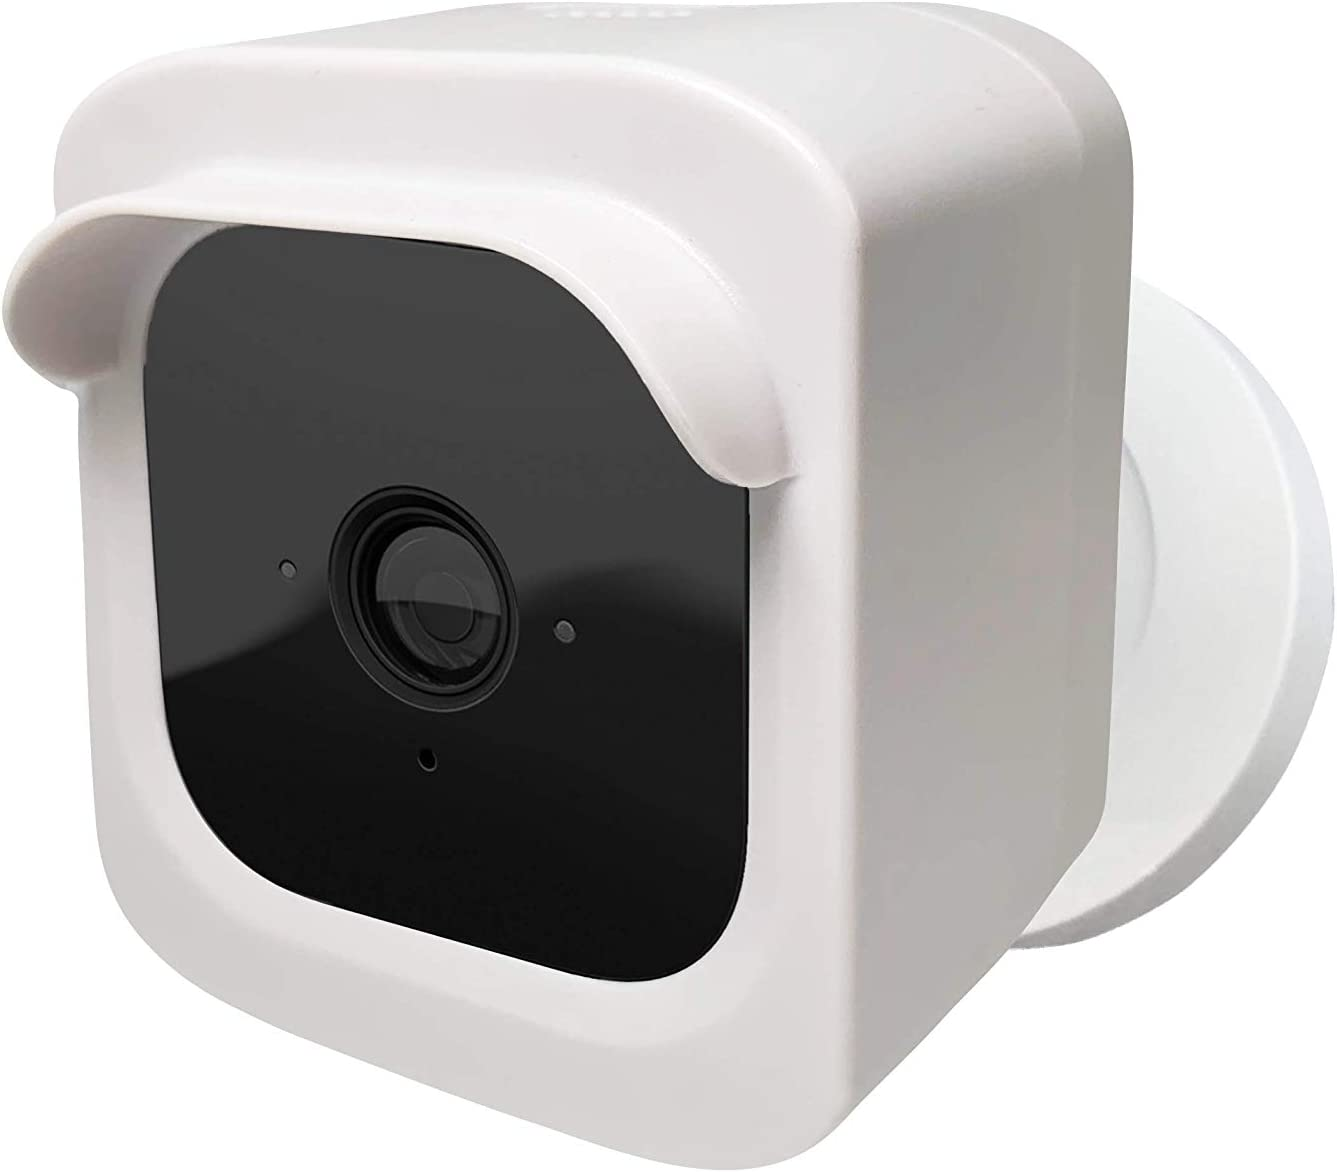 Blink Mini Security Camera Hard Covers Add On (White 1 pcs) - Hard Case for Blink Mini- Blink Mini Cam Housing Accessories for Protection-Blink Mini Camera Covers for Indoor & Outdoor by Sully